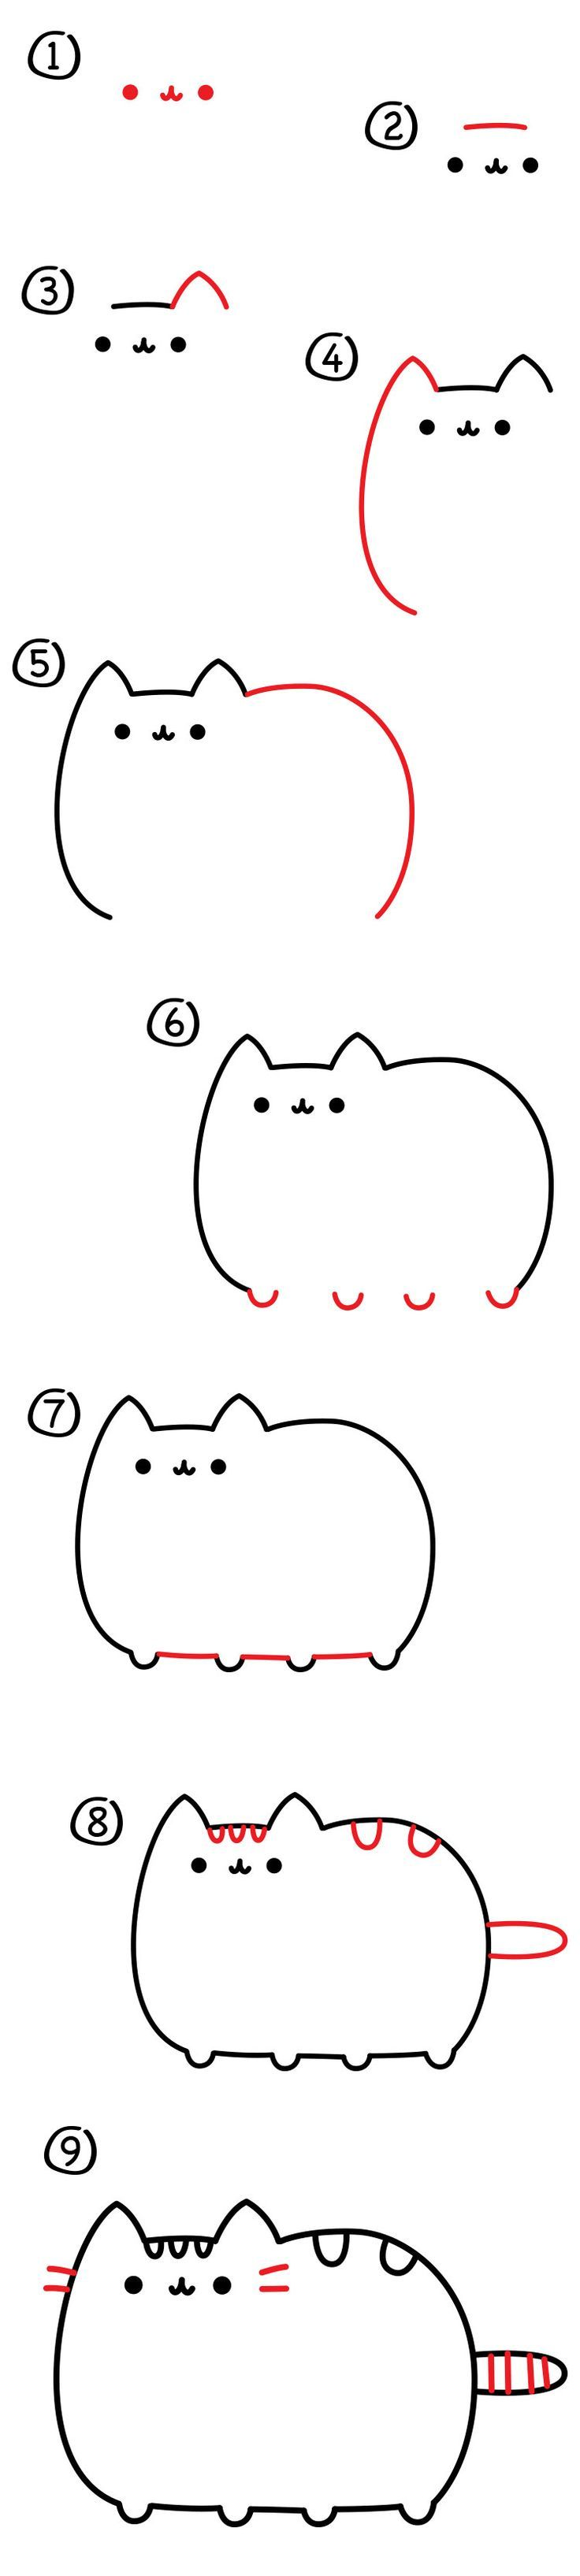 :) :) :) Follow along and learn how to draw the Pusheen Cat! Also visit the official website and draw things for your cat to play with.